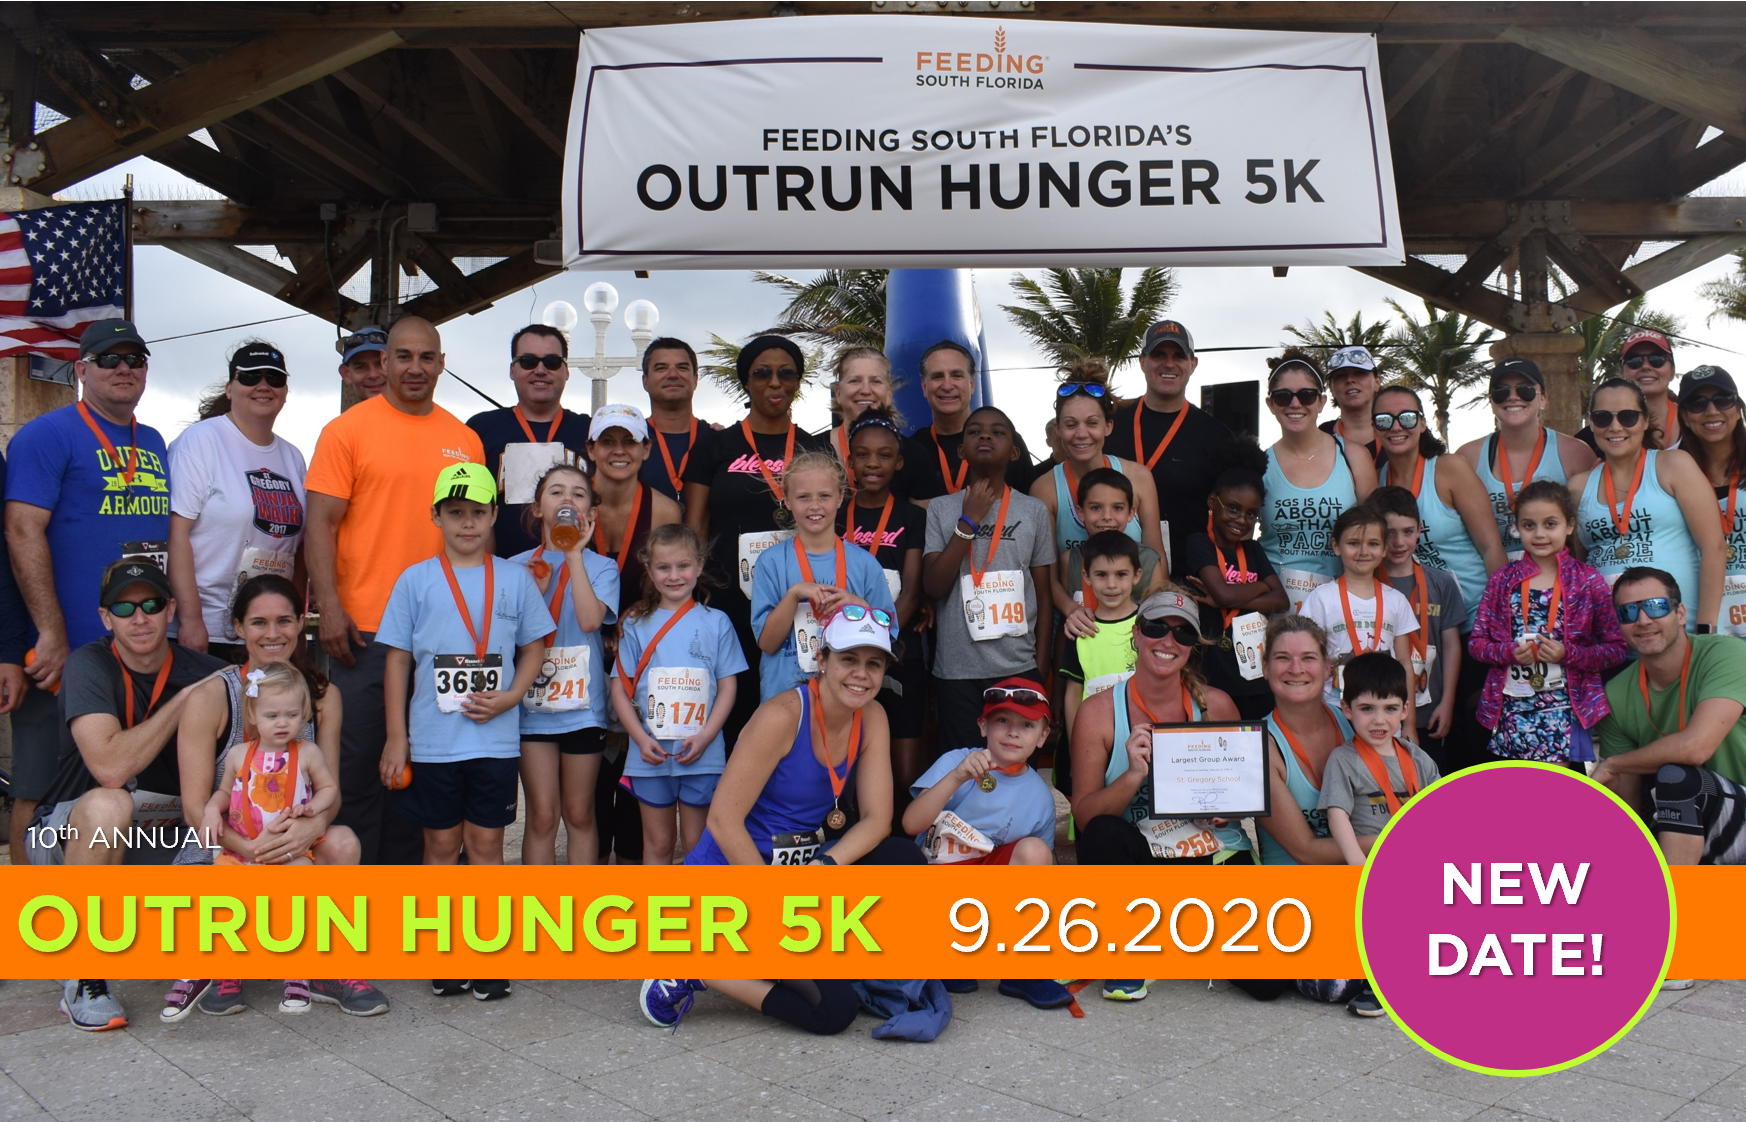 10th Annual Outrun Hunger 5K presented by JM Family Enterprises